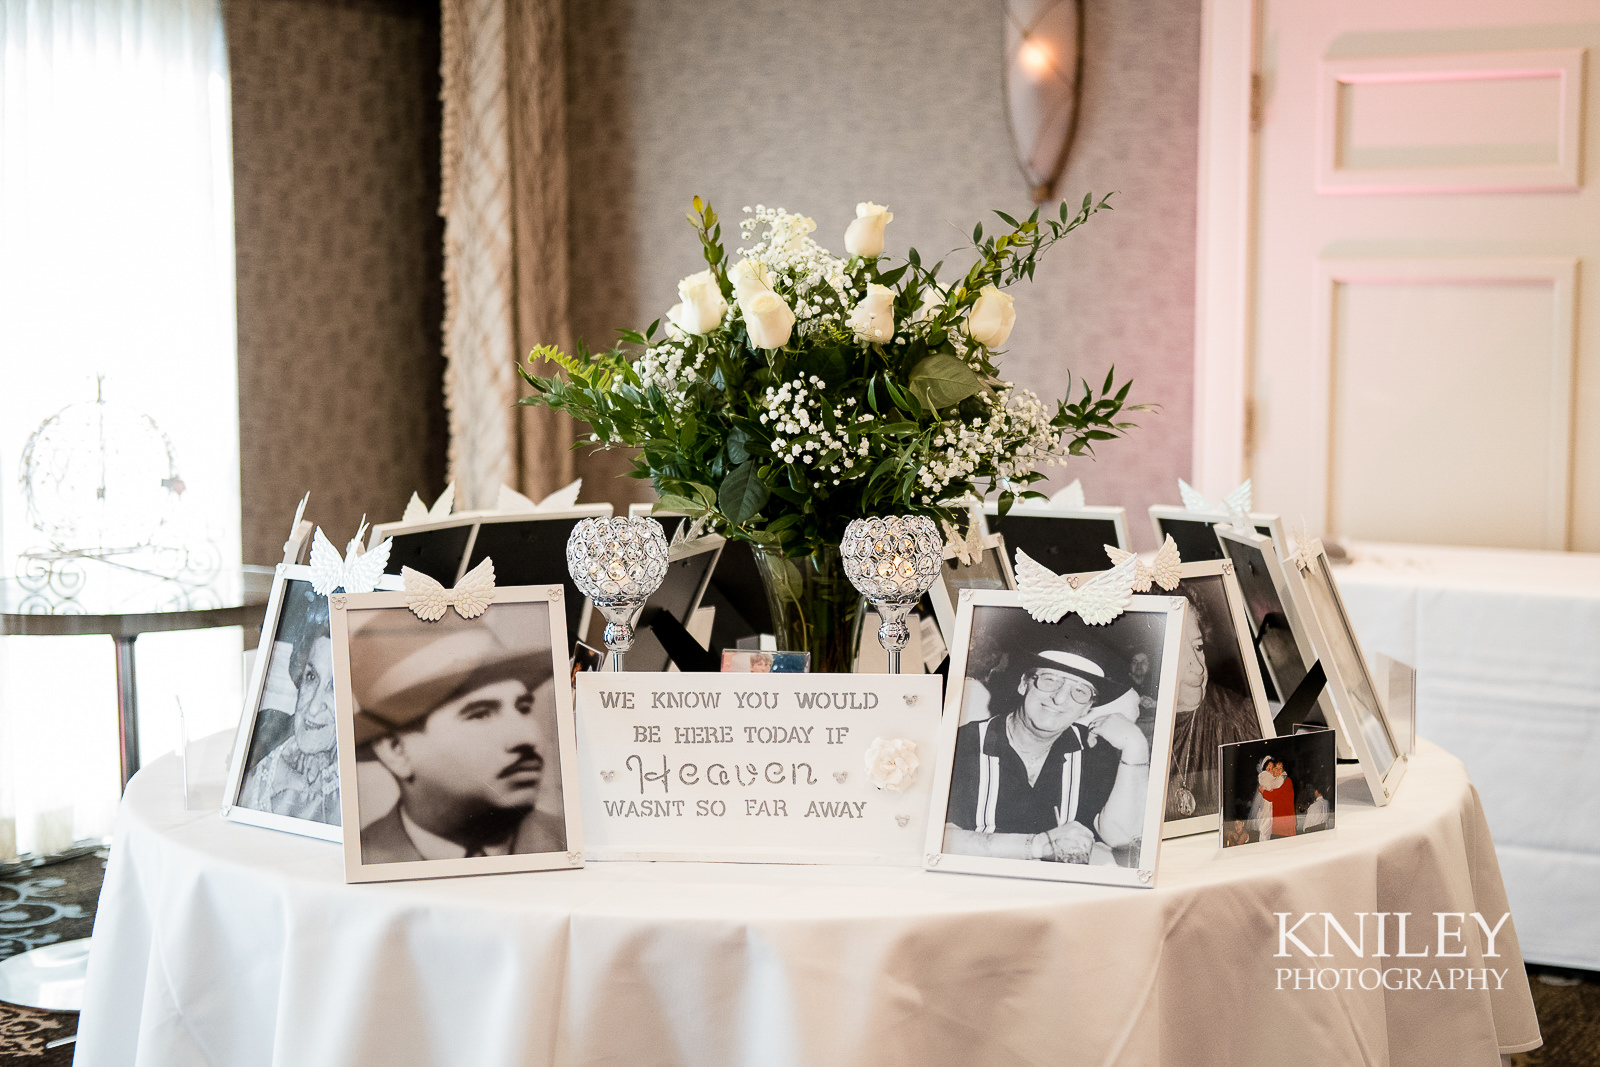 070 - Woodcliff Hotel - Rochester NY wedding photo - Kniley Photography.jpg